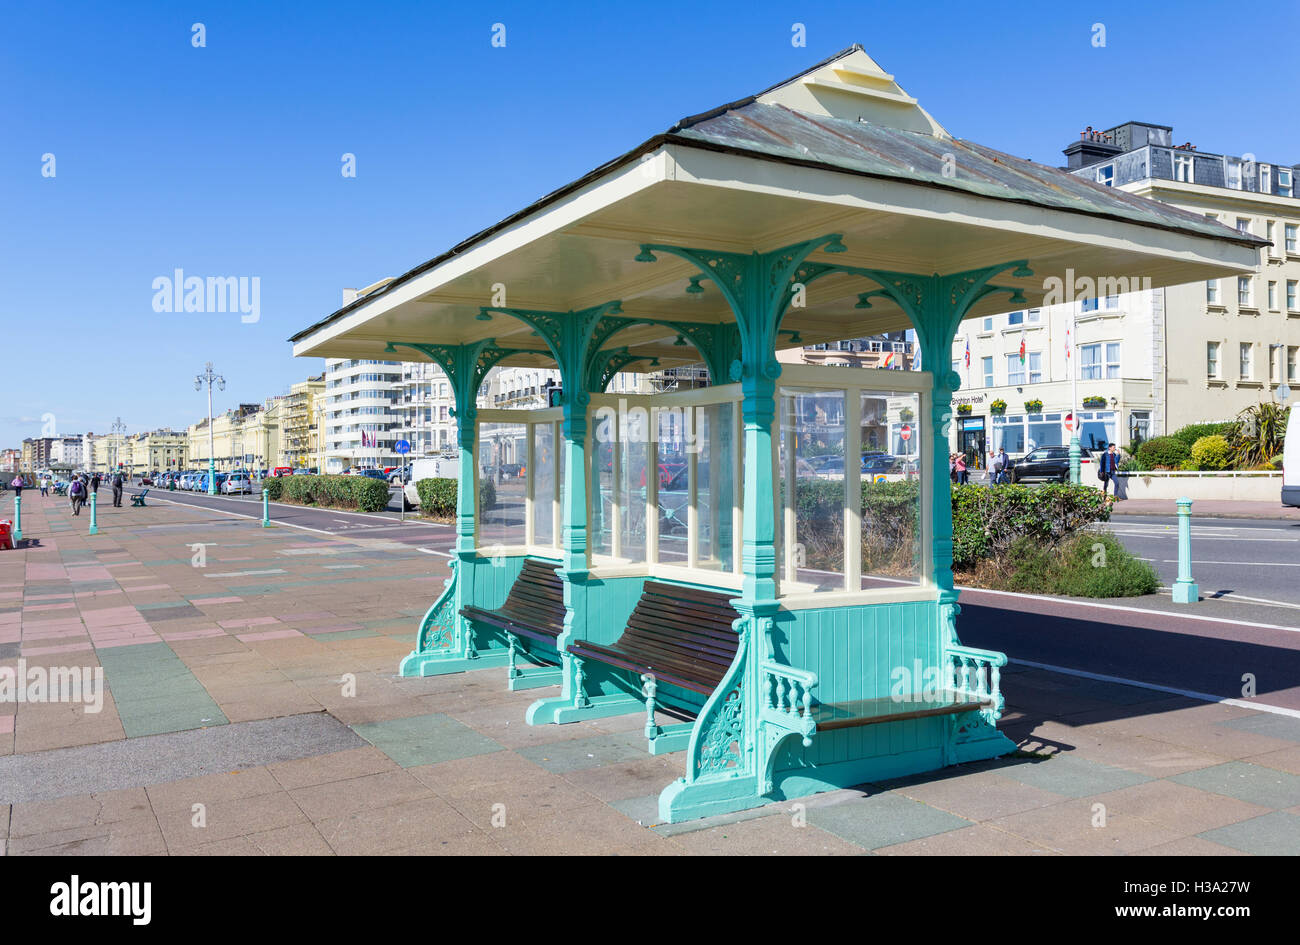 Old style seafront shelter on the promenade at Brighton, East Sussex, England, UK. - Stock Image